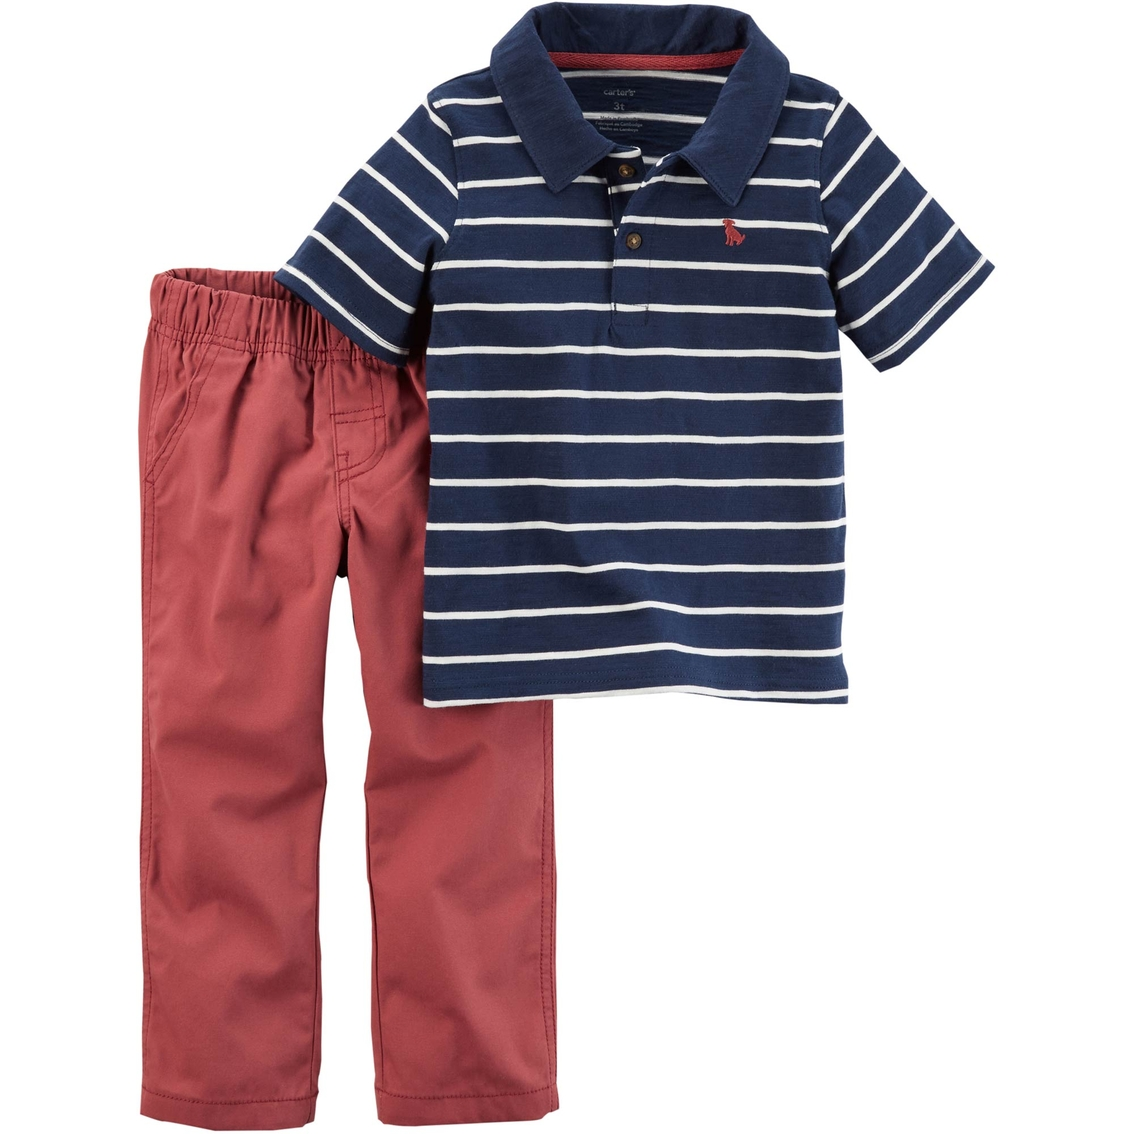 Carters Infant Boys 2 Pc Striped Polo Shirt And Canvas Pants Set